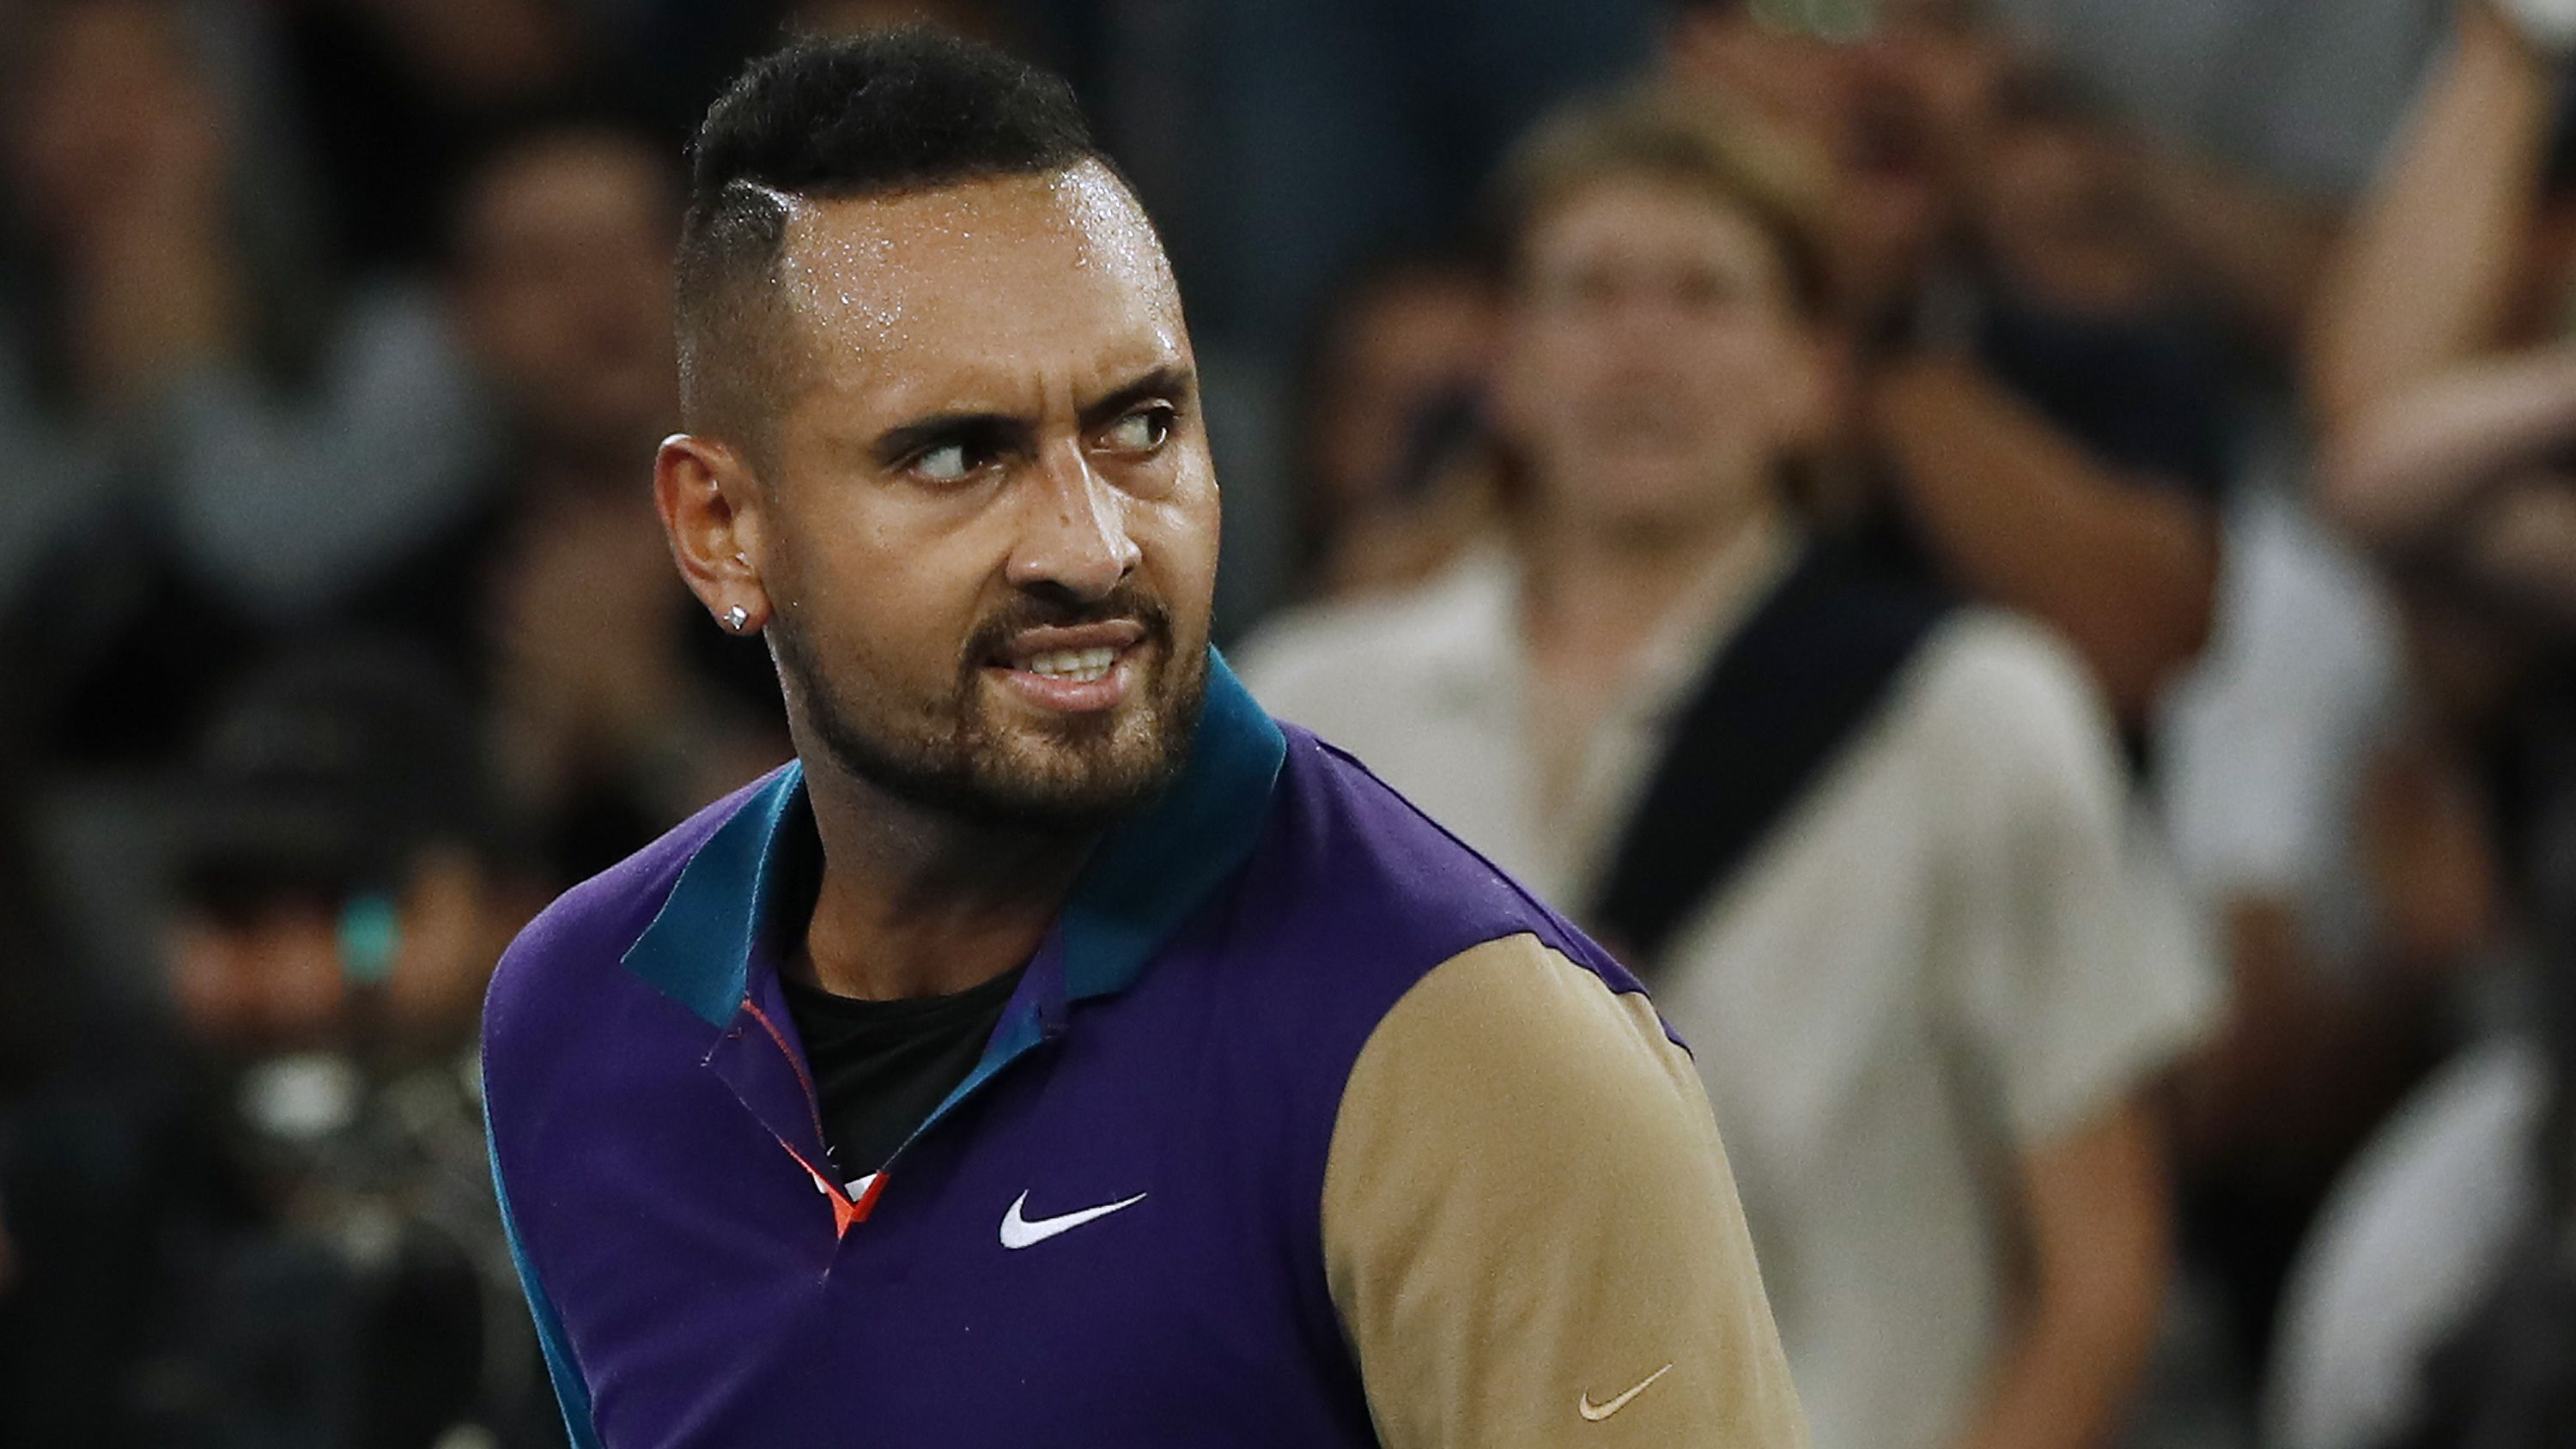 MELBOURNE, AUSTRALIA - FEBRUARY 12: Nick Kyrgios of Australia reacts in his Men's Singles third round match against Dominic Thiem of Austria during day five of the 2021 Australian Open at Melbourne Park on February 12, 2021 in Melbourne, Australia. (Photo by Daniel Pockett/Getty Images)